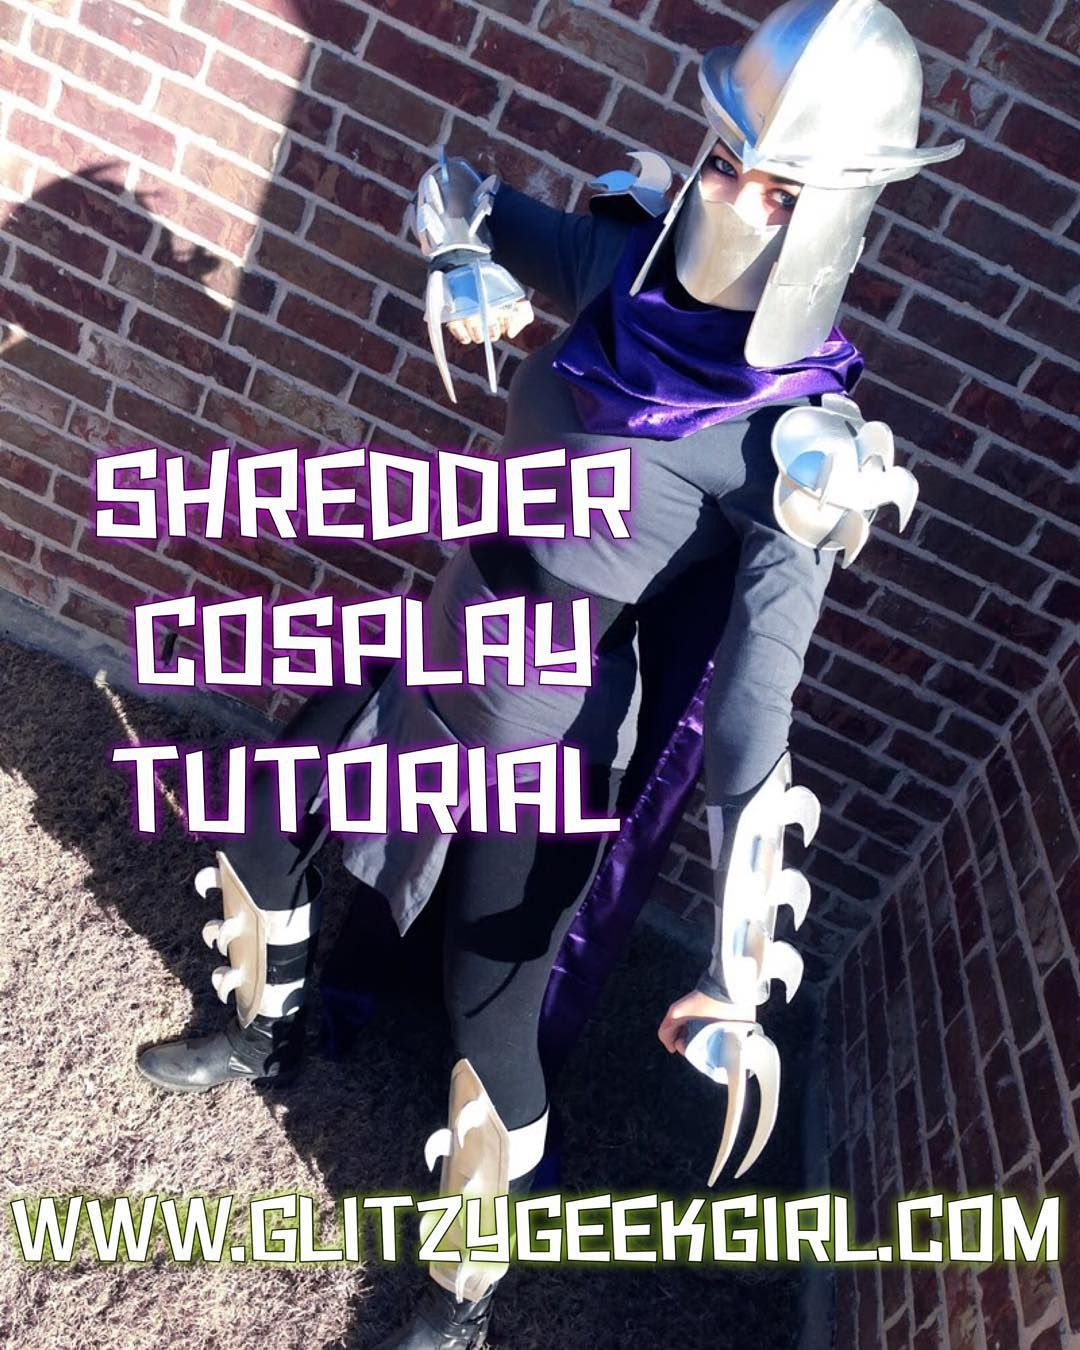 todayu0027s halloween costume tutorial is shredder from tmnt i made this with craft